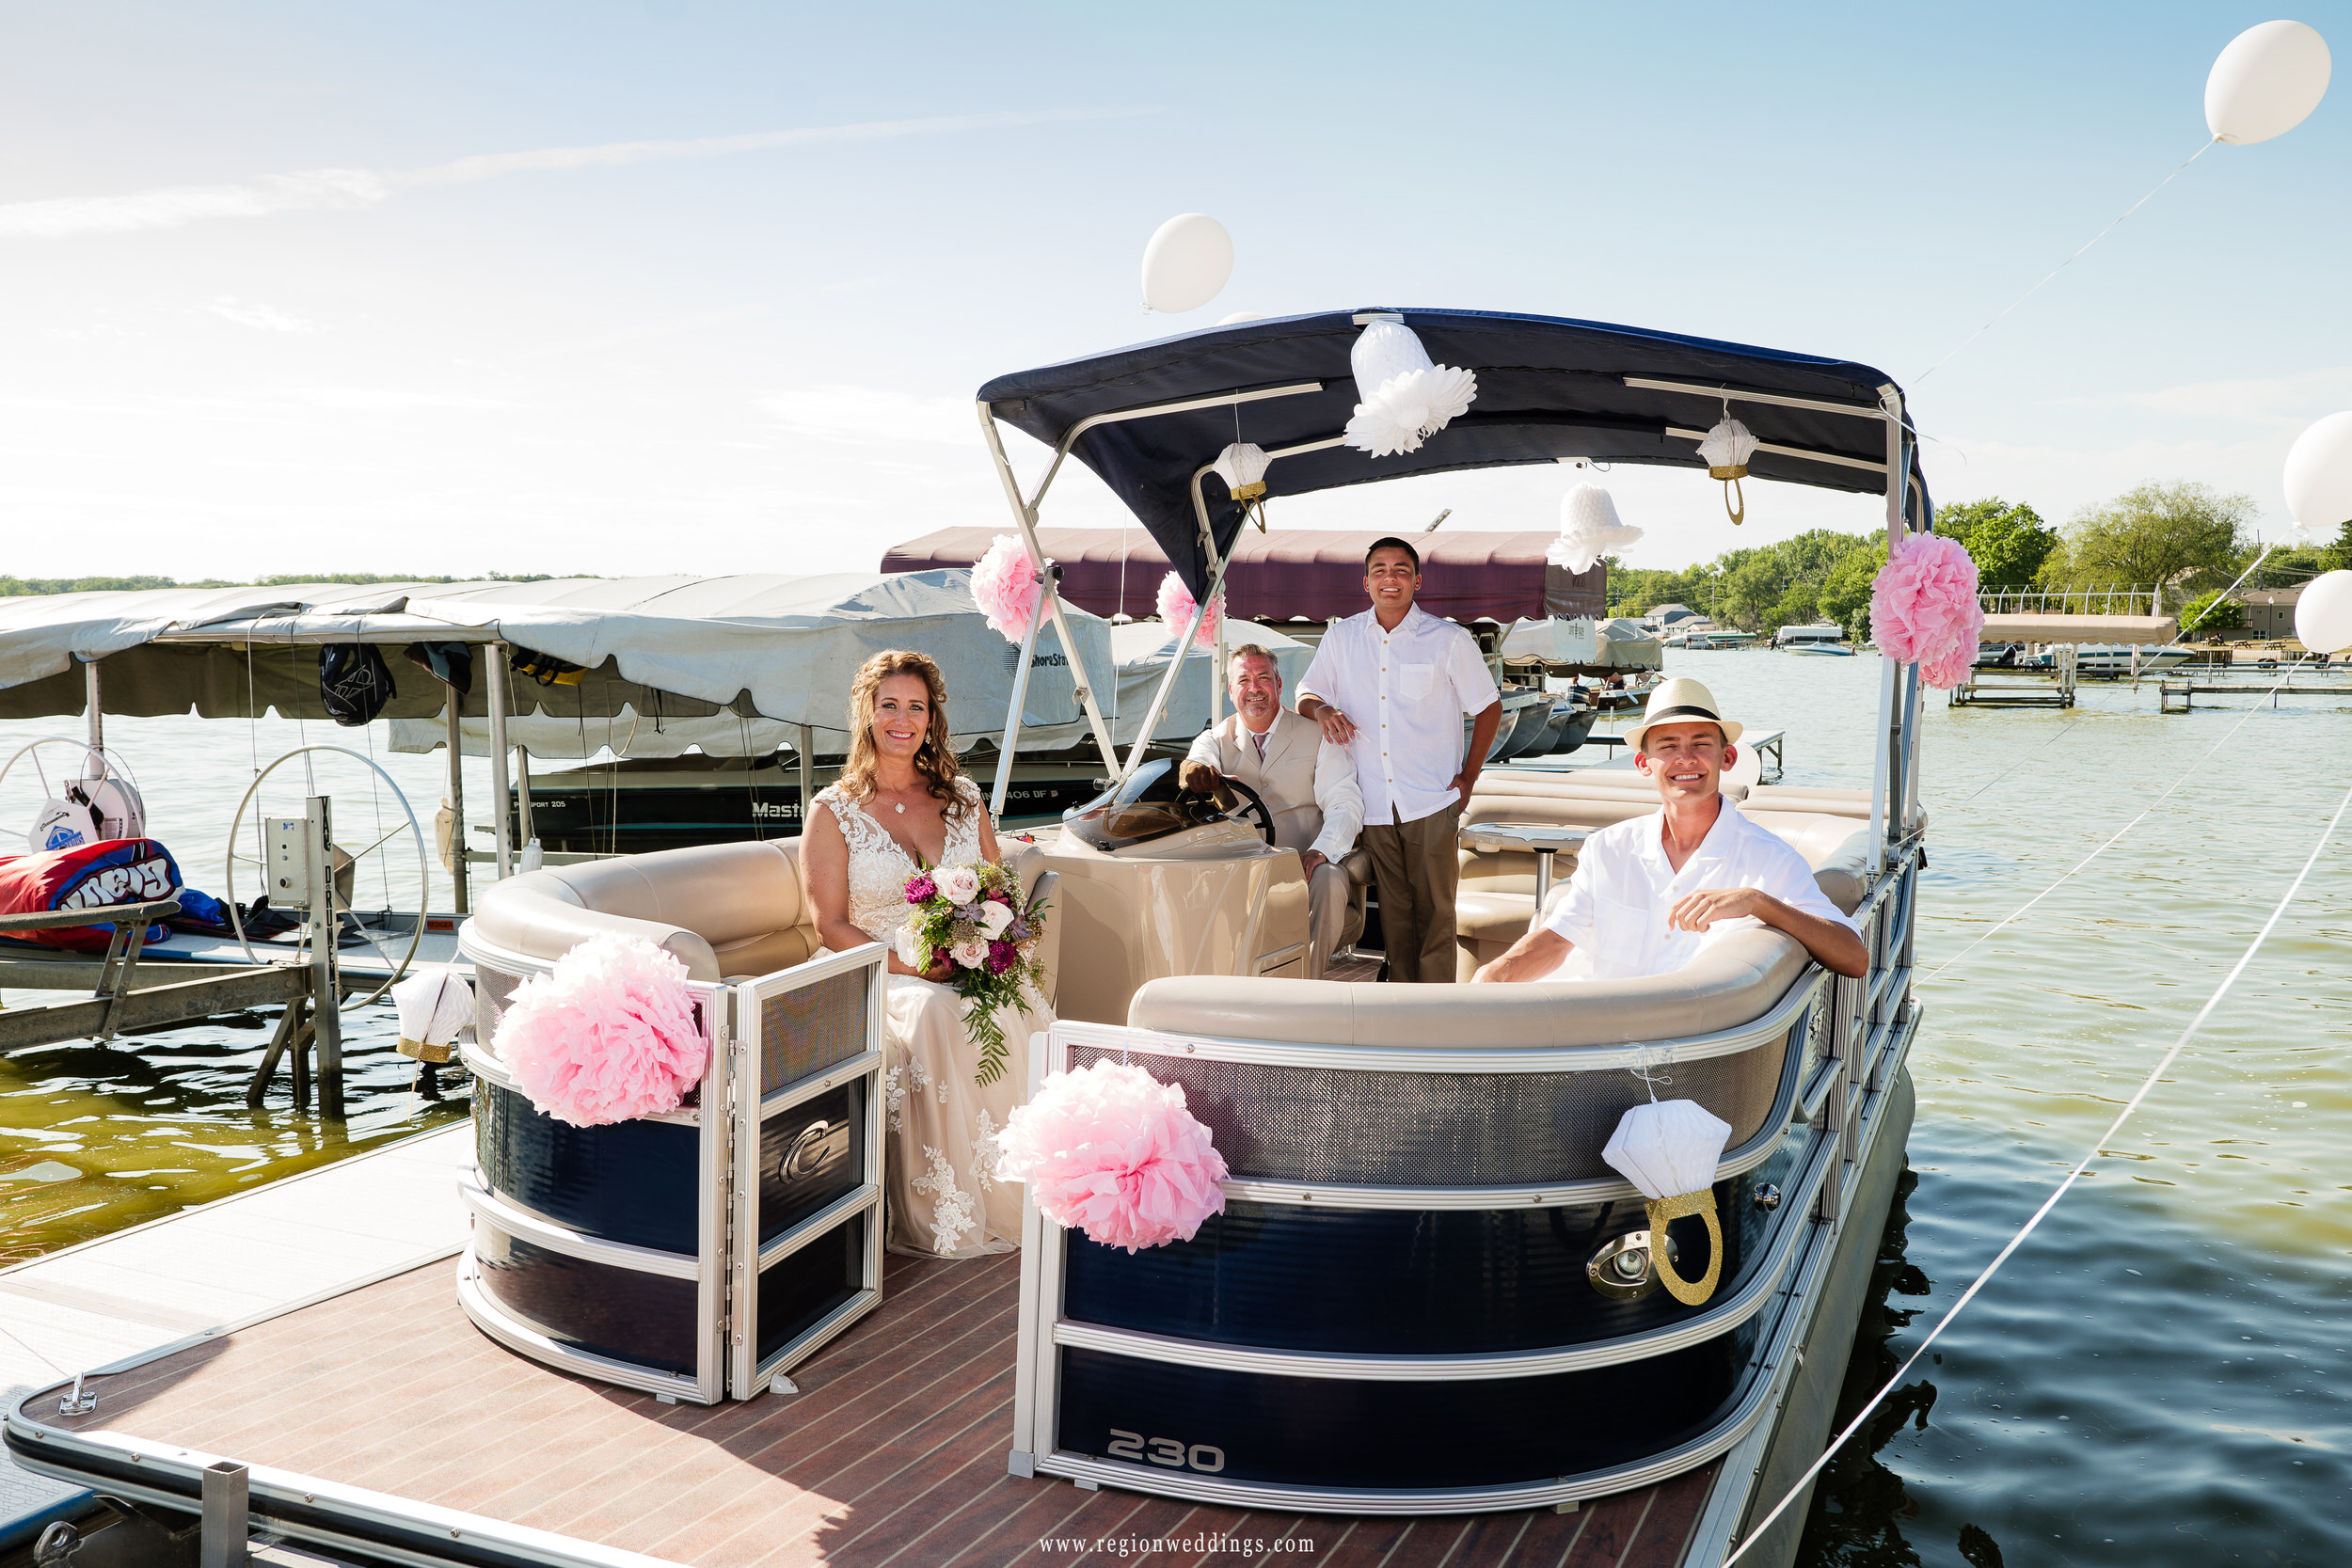 The bride boards a boat that will take her to her wedding ceremony.